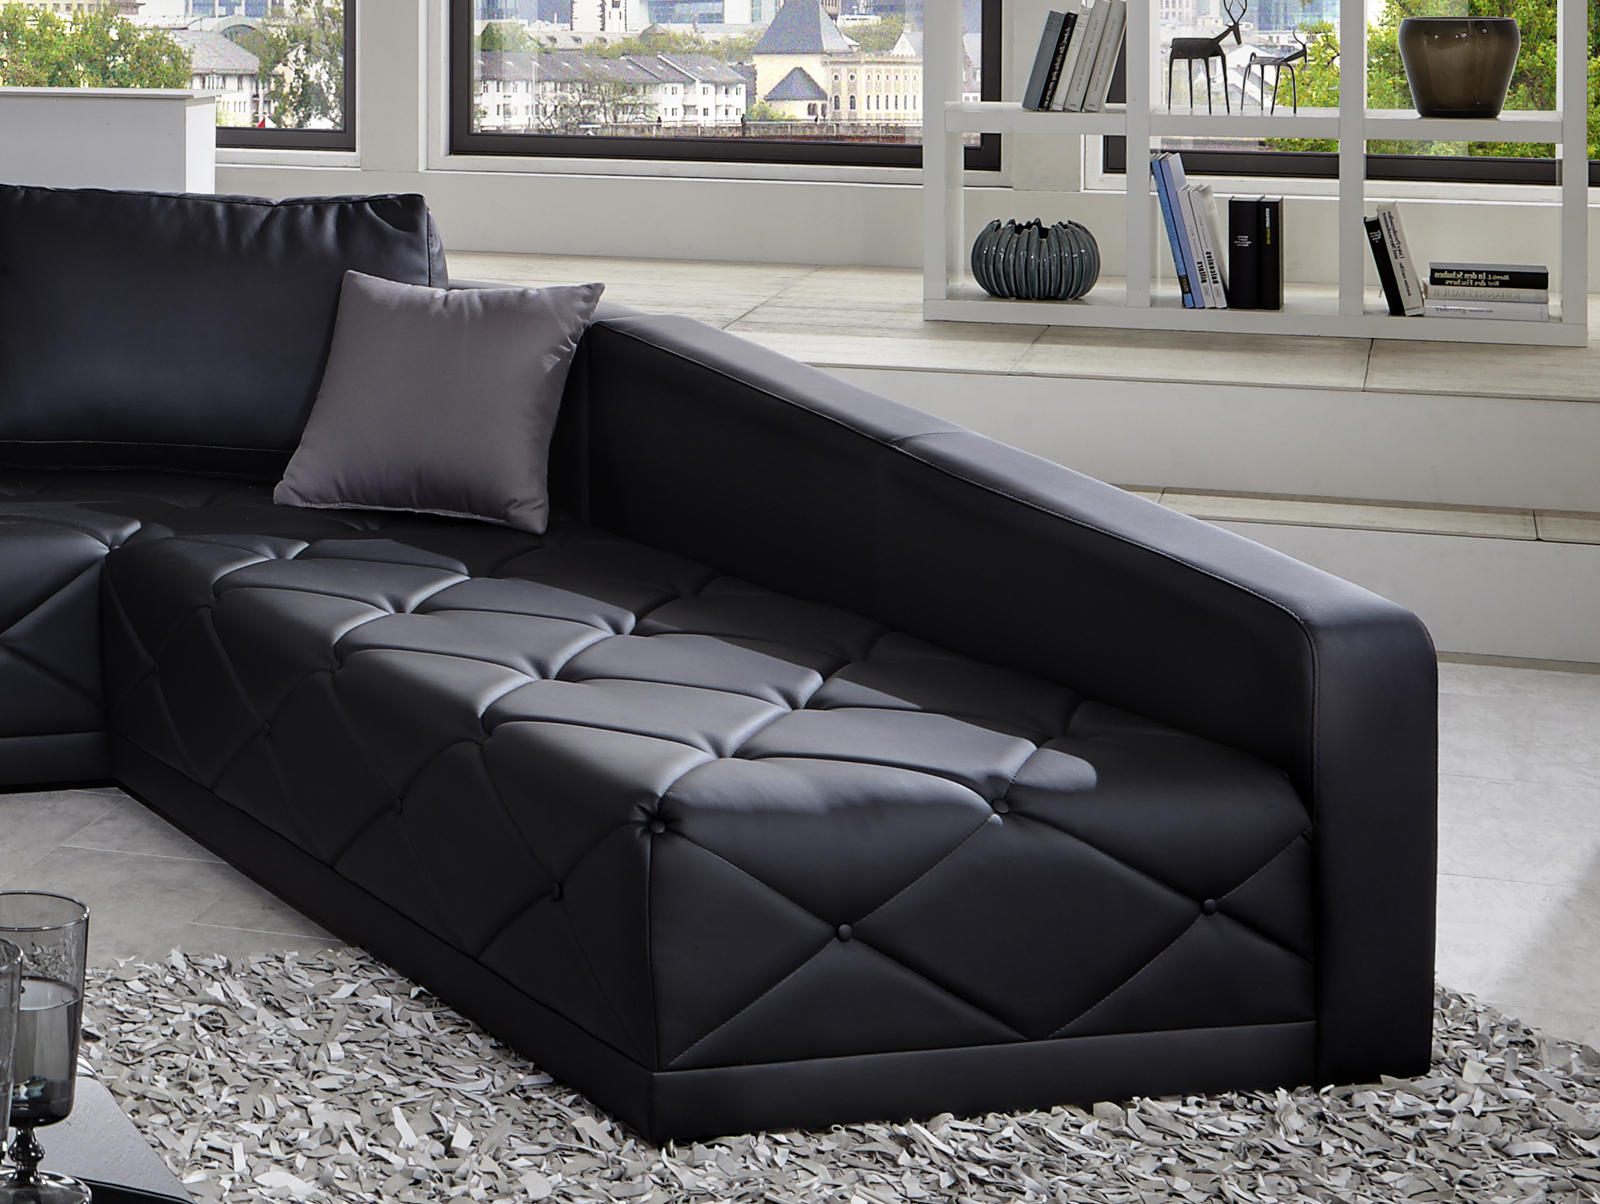 sam design sofa schwarz nero wohnlandschaft 380 x 290 cm. Black Bedroom Furniture Sets. Home Design Ideas